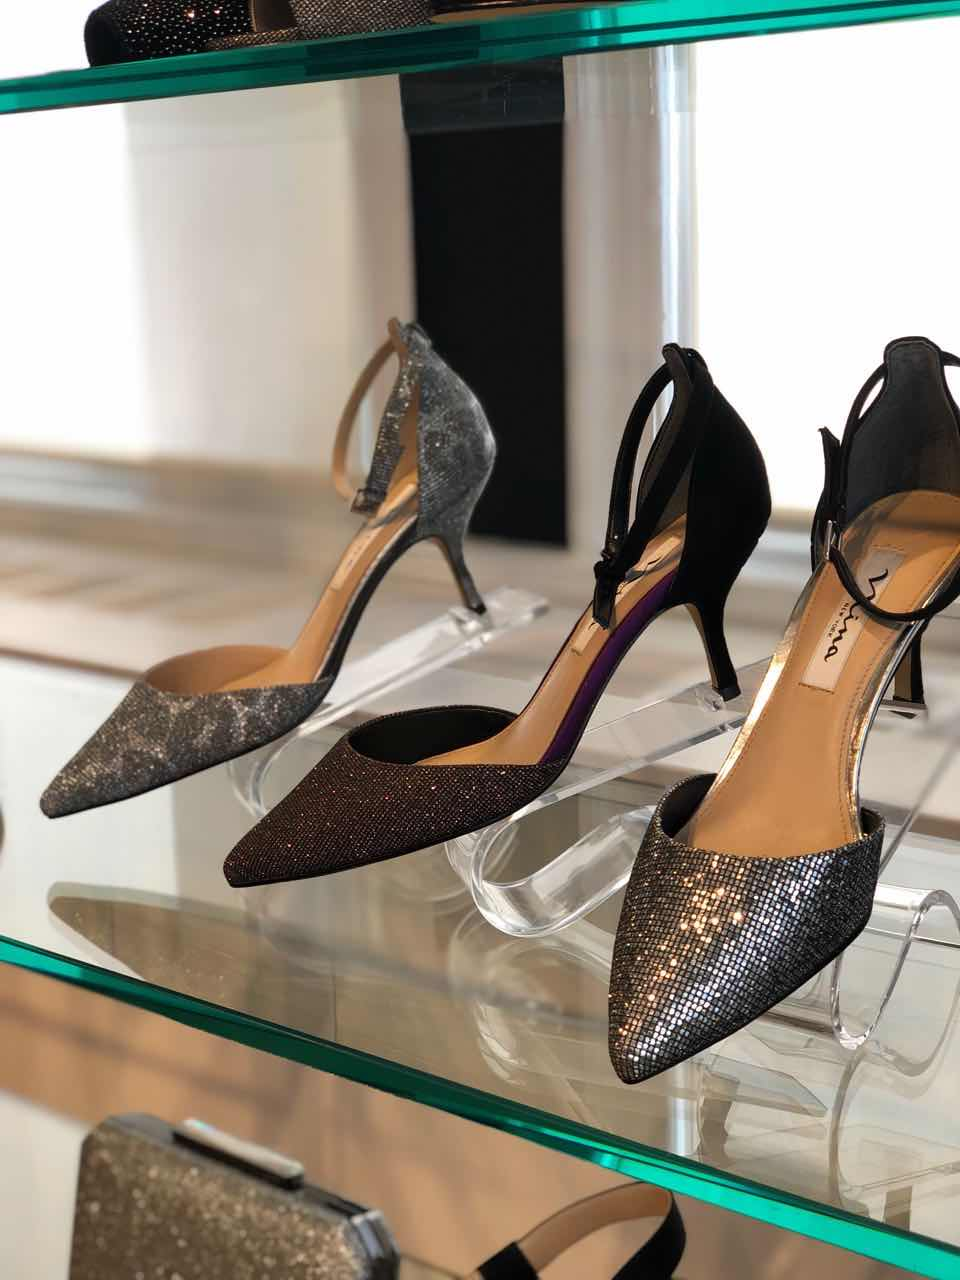 Get Ready To Sparkle! Festive Party Shoes To Wear All Holiday Season Long